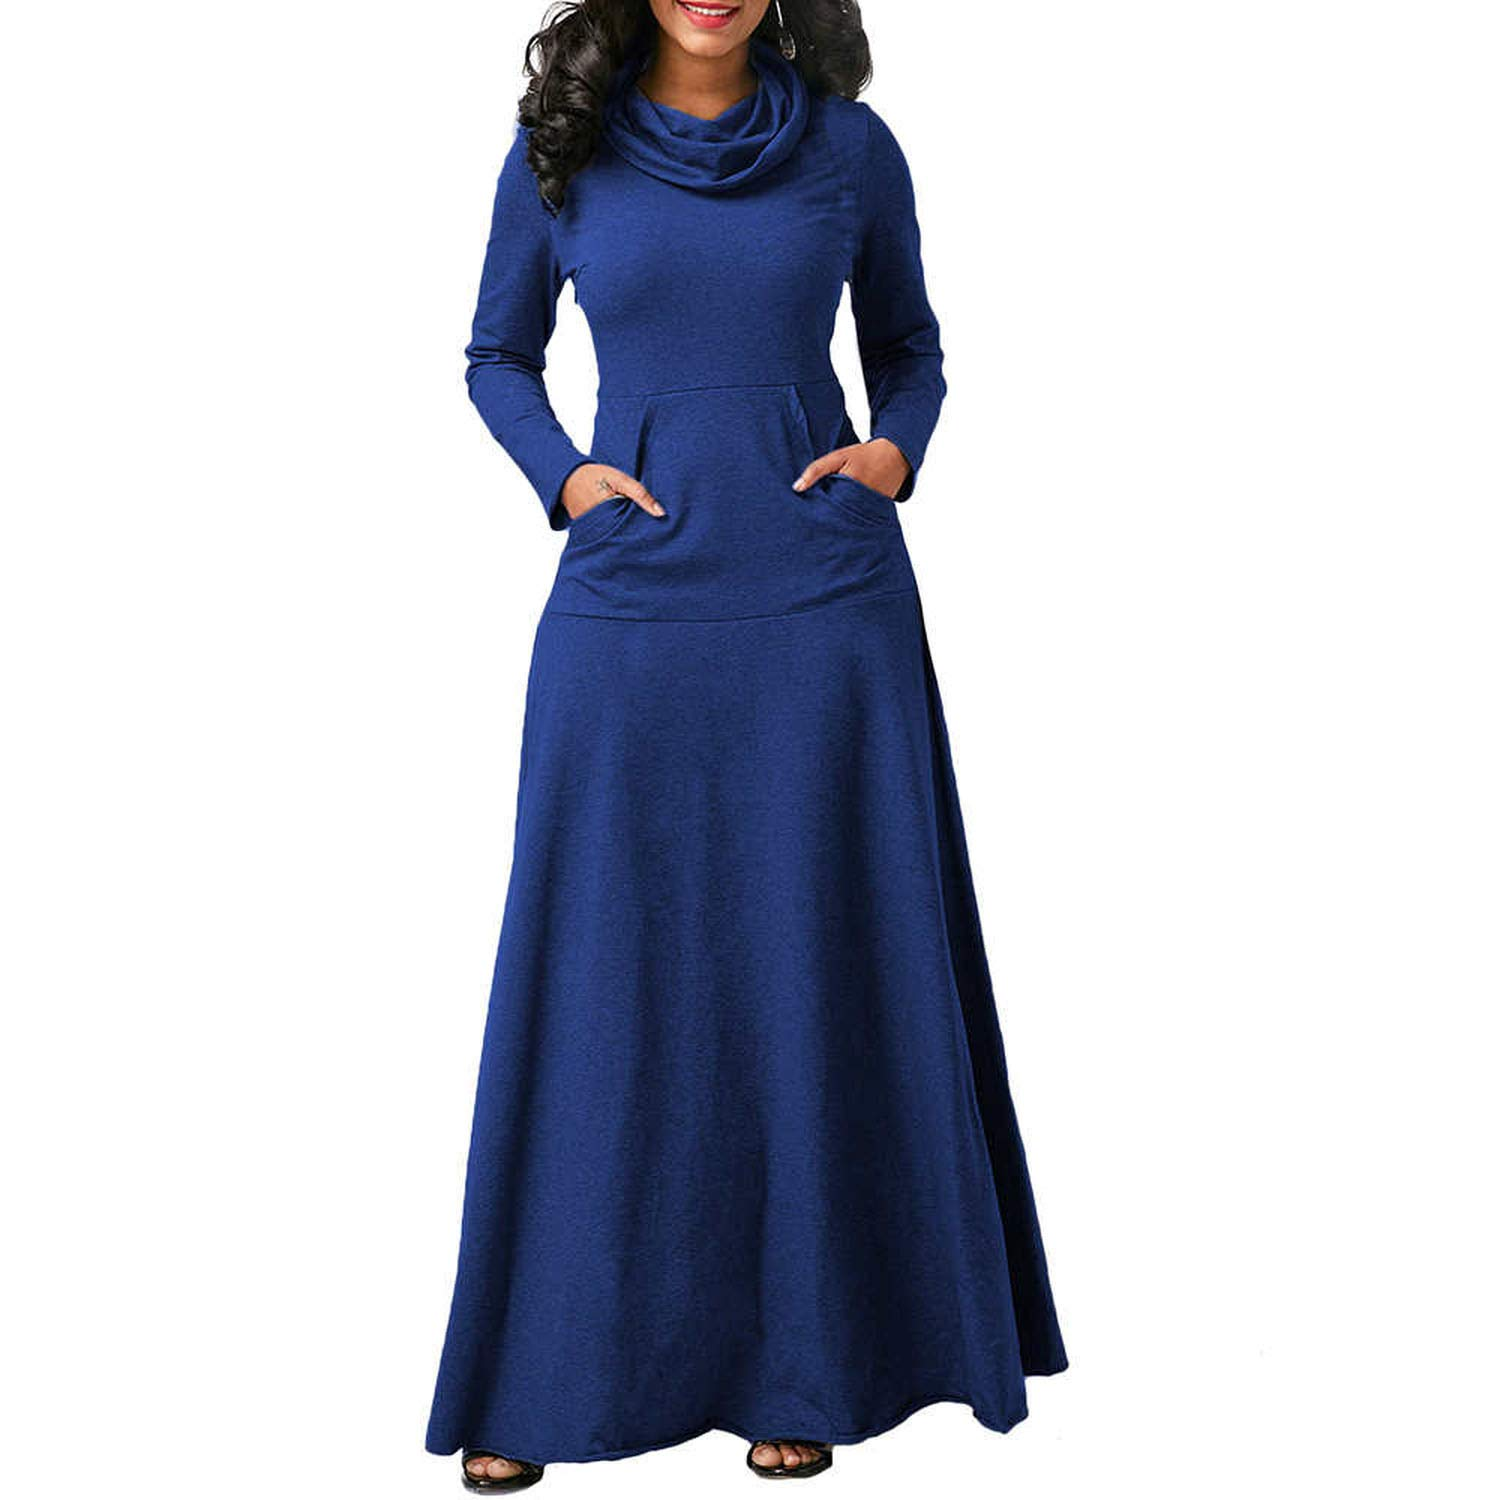 bluee I'll NEVER BE HER 2018 Winter Long Sleeve Cotton Solid Bow Collar Party Dress Plus Size XXL Casual Women Boho Dress